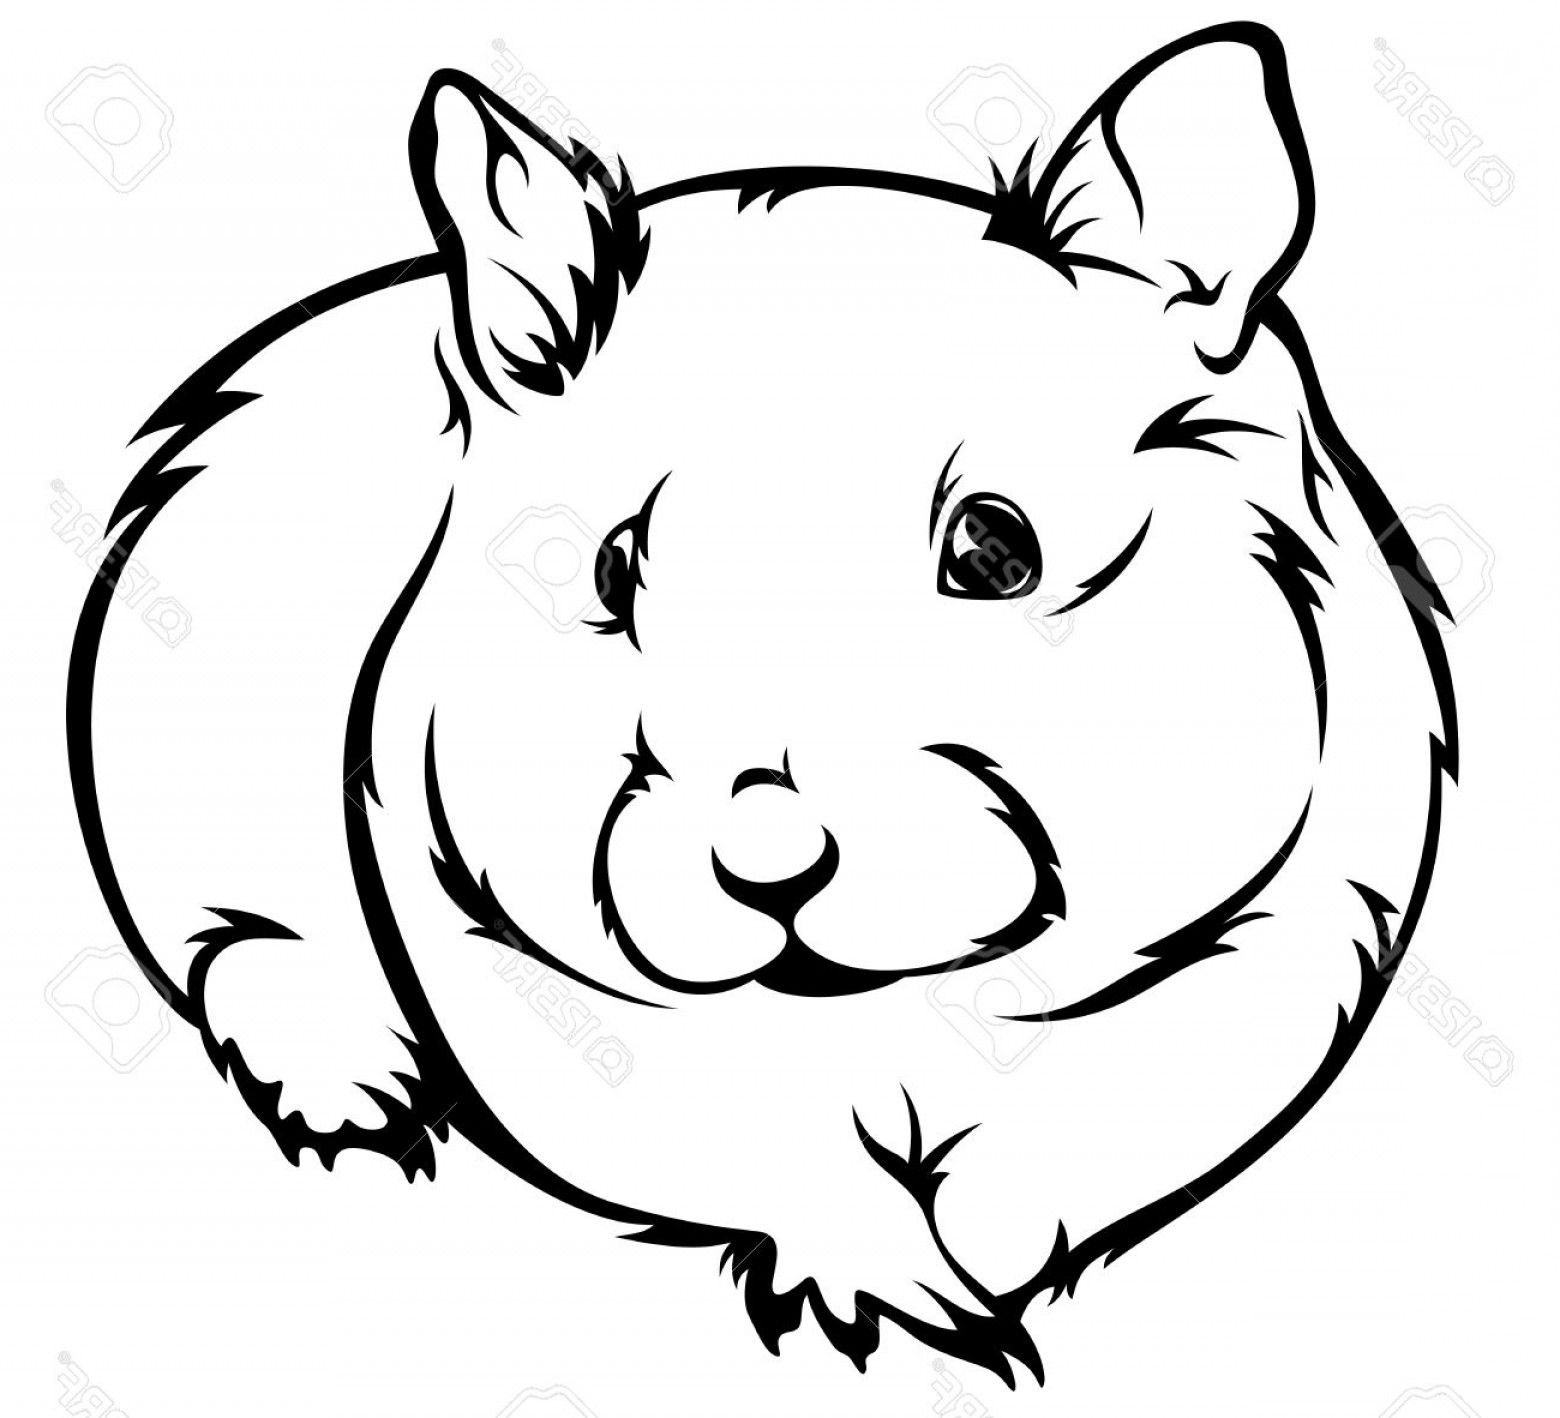 1560x1418 Photocute Hamster Cricetus Vector Illustration Black And White